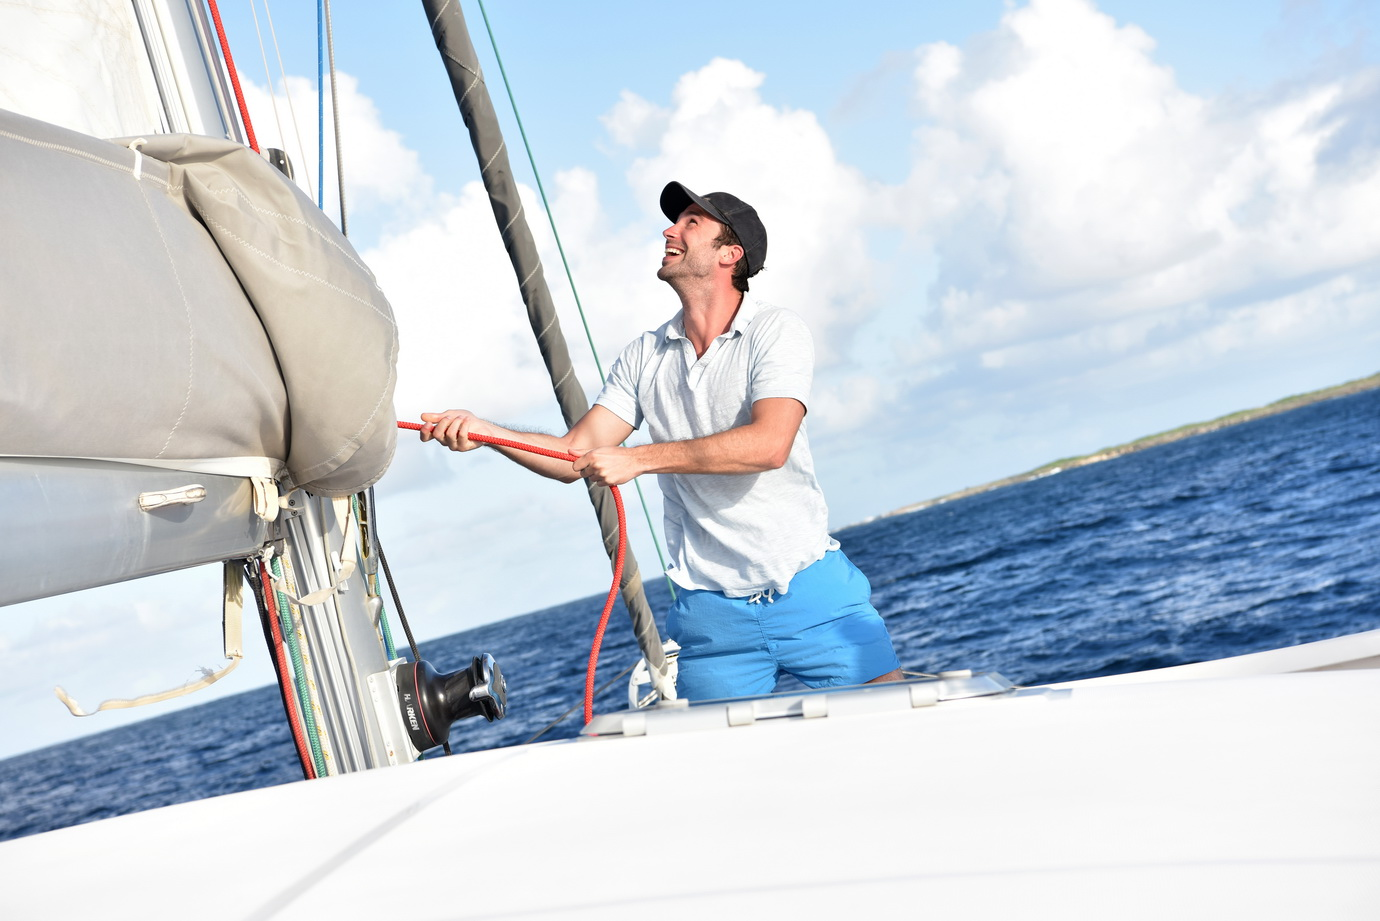 Man pulling on rope to sail out